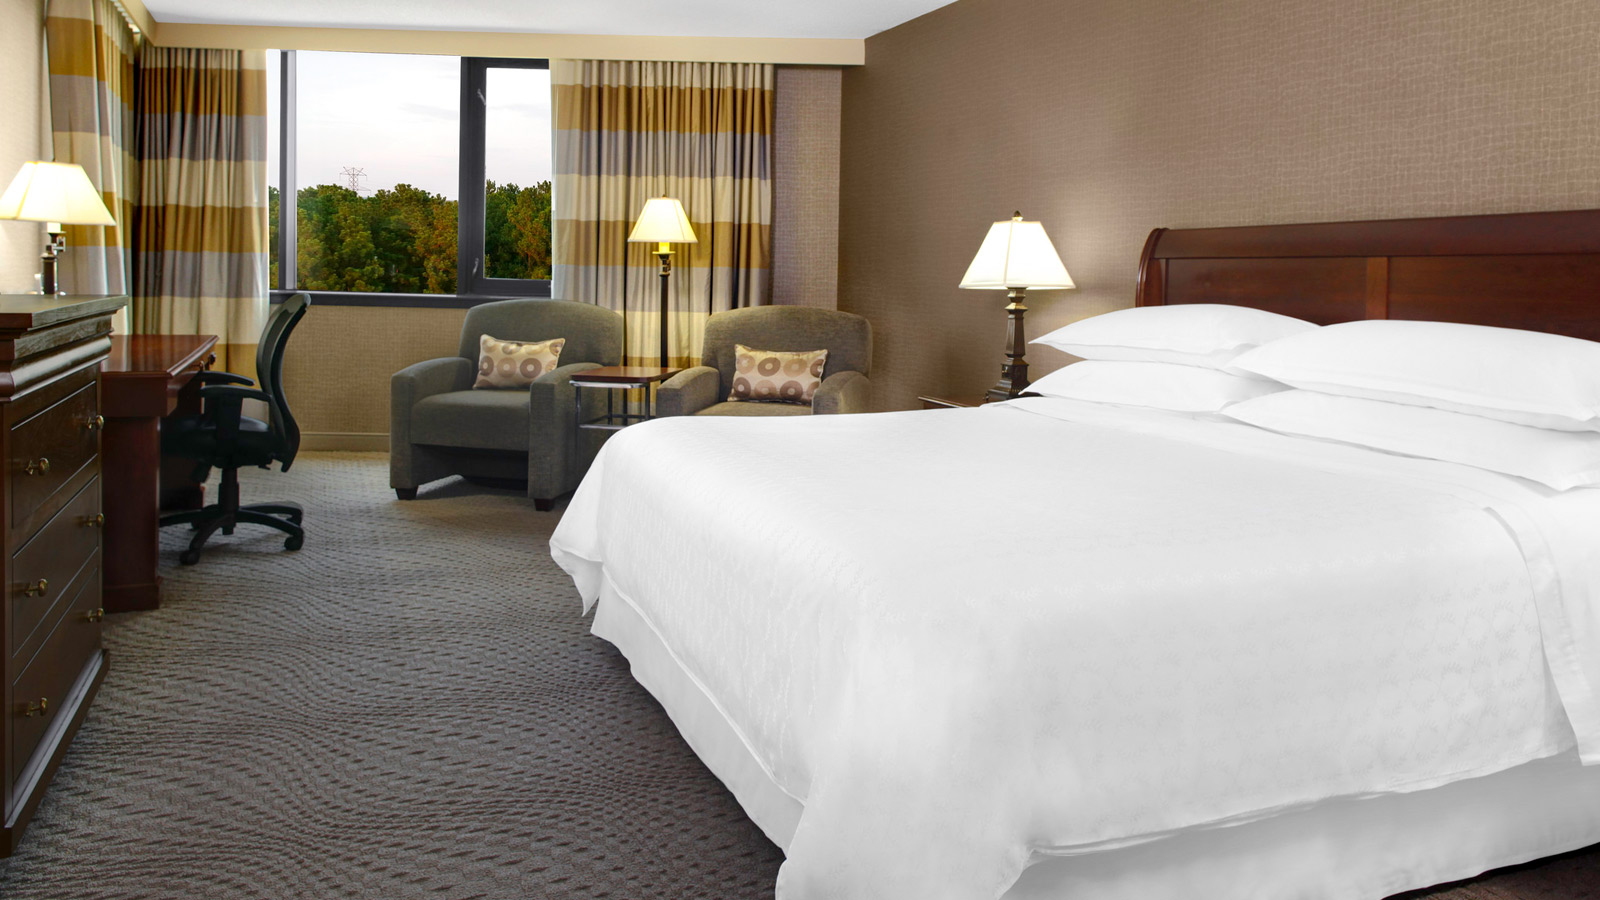 Triangle Rent A Car Greensboro Nc: Sheraton Hotel In Durham Nc / Cuyahoga Falls Patch